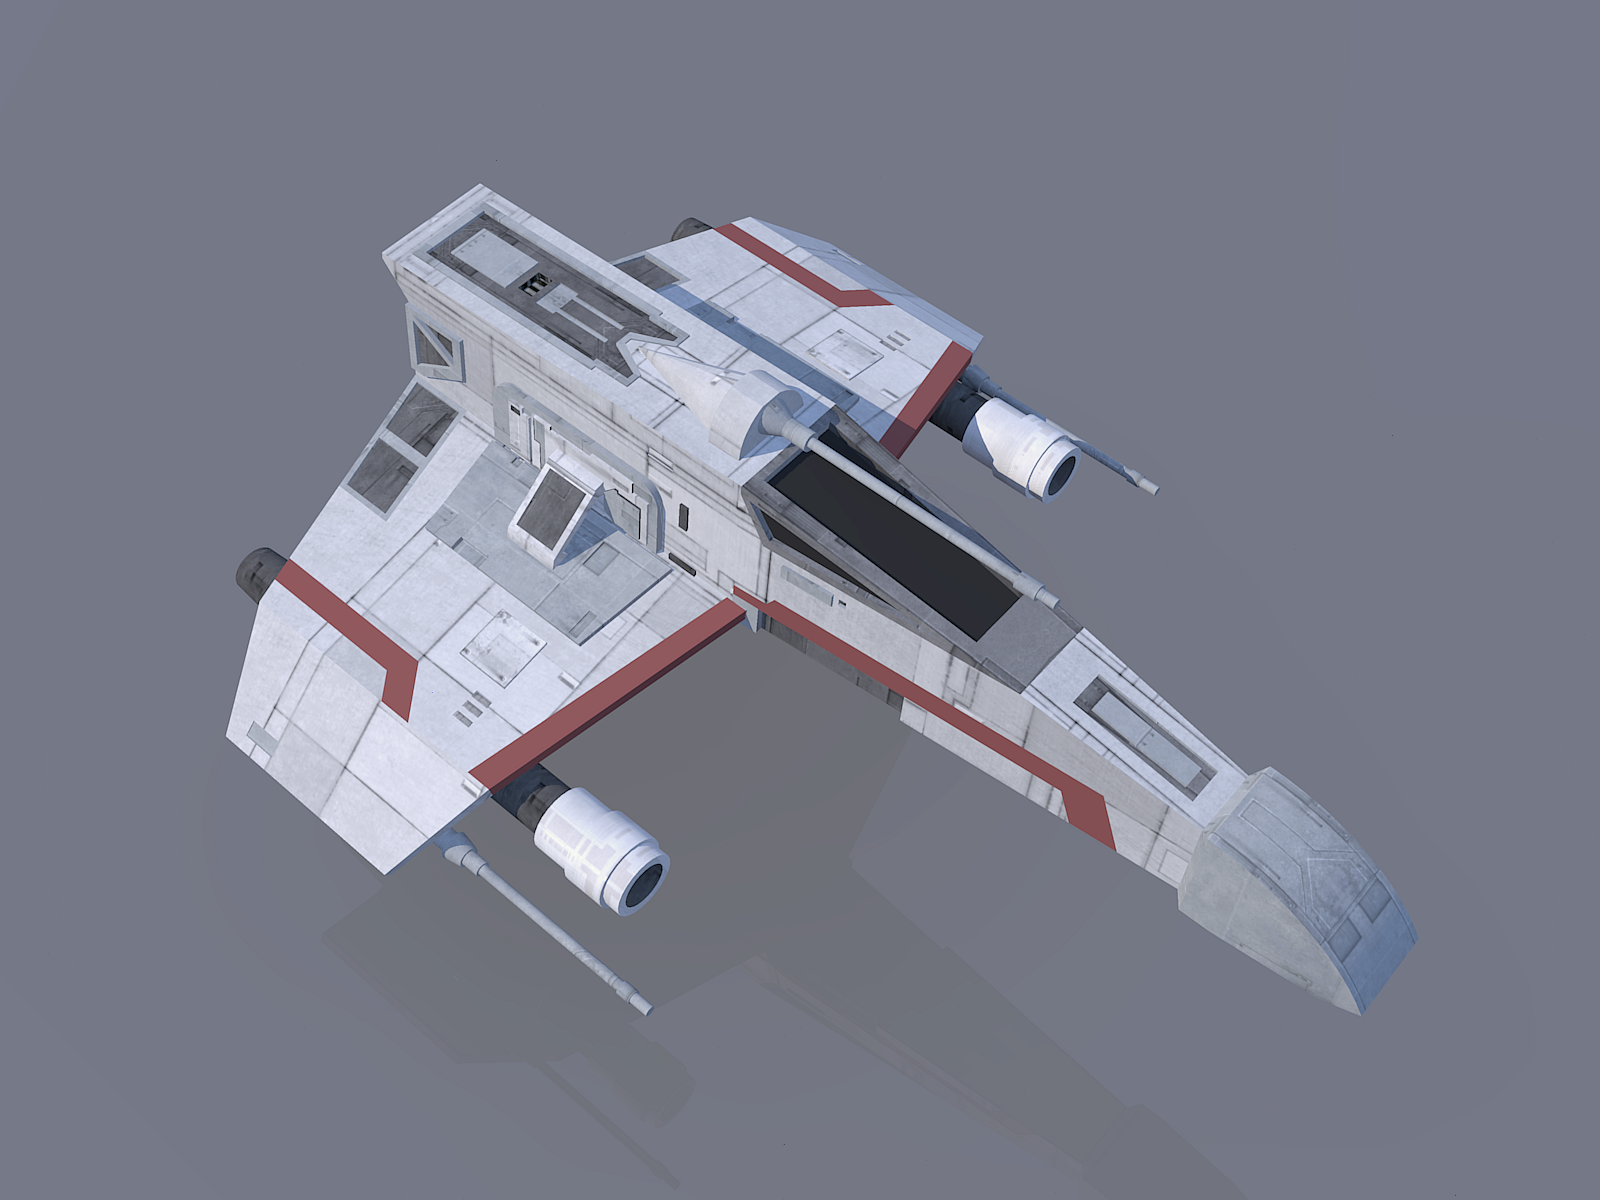 E-wing model and render